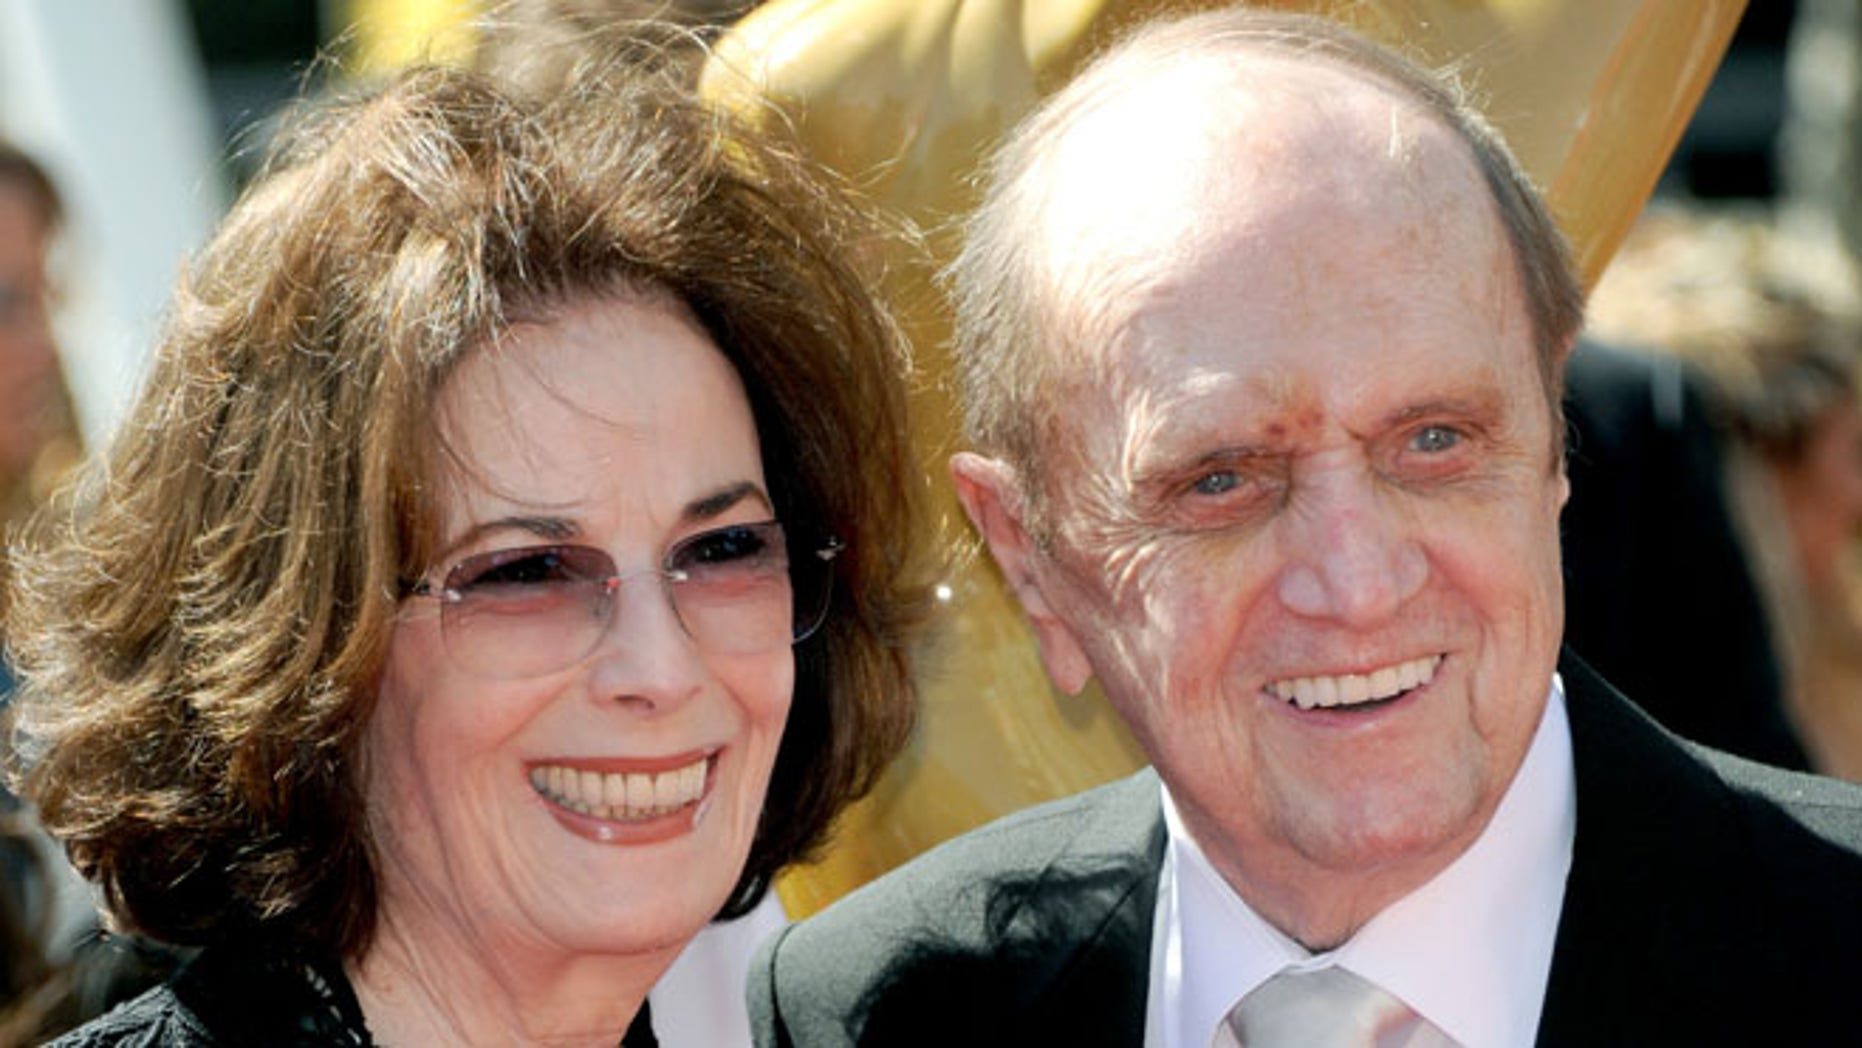 Bob Newhart, right, and wife Ginny Newhart arrive at the Primetime Creative Arts Emmy Awards at the Nokia Theatre L.A. Live on Sunday, Sept. 15, 2013, in Los Angeles. (Photo by Richard Shotwell/Invision/AP)